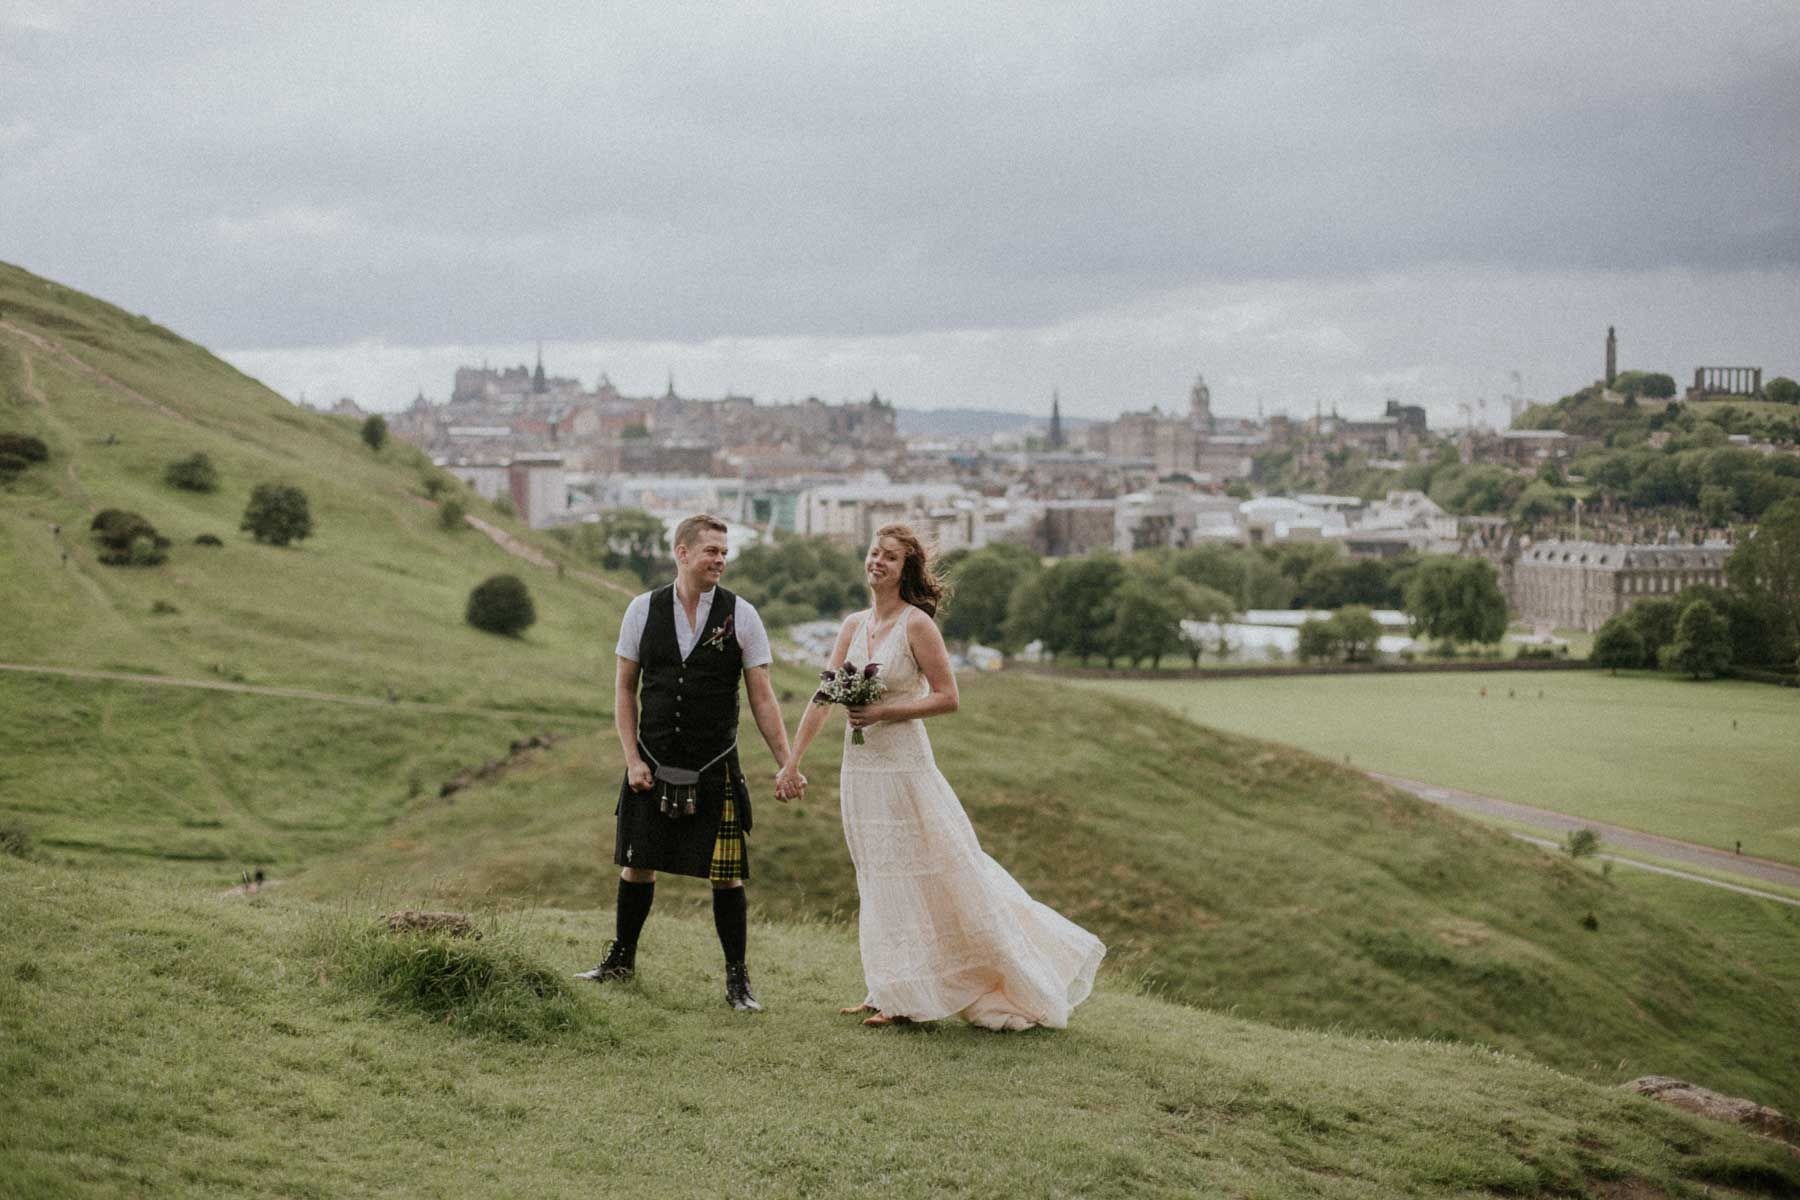 Edinburgh Elopement Photographer | Scottish Destination Elopement